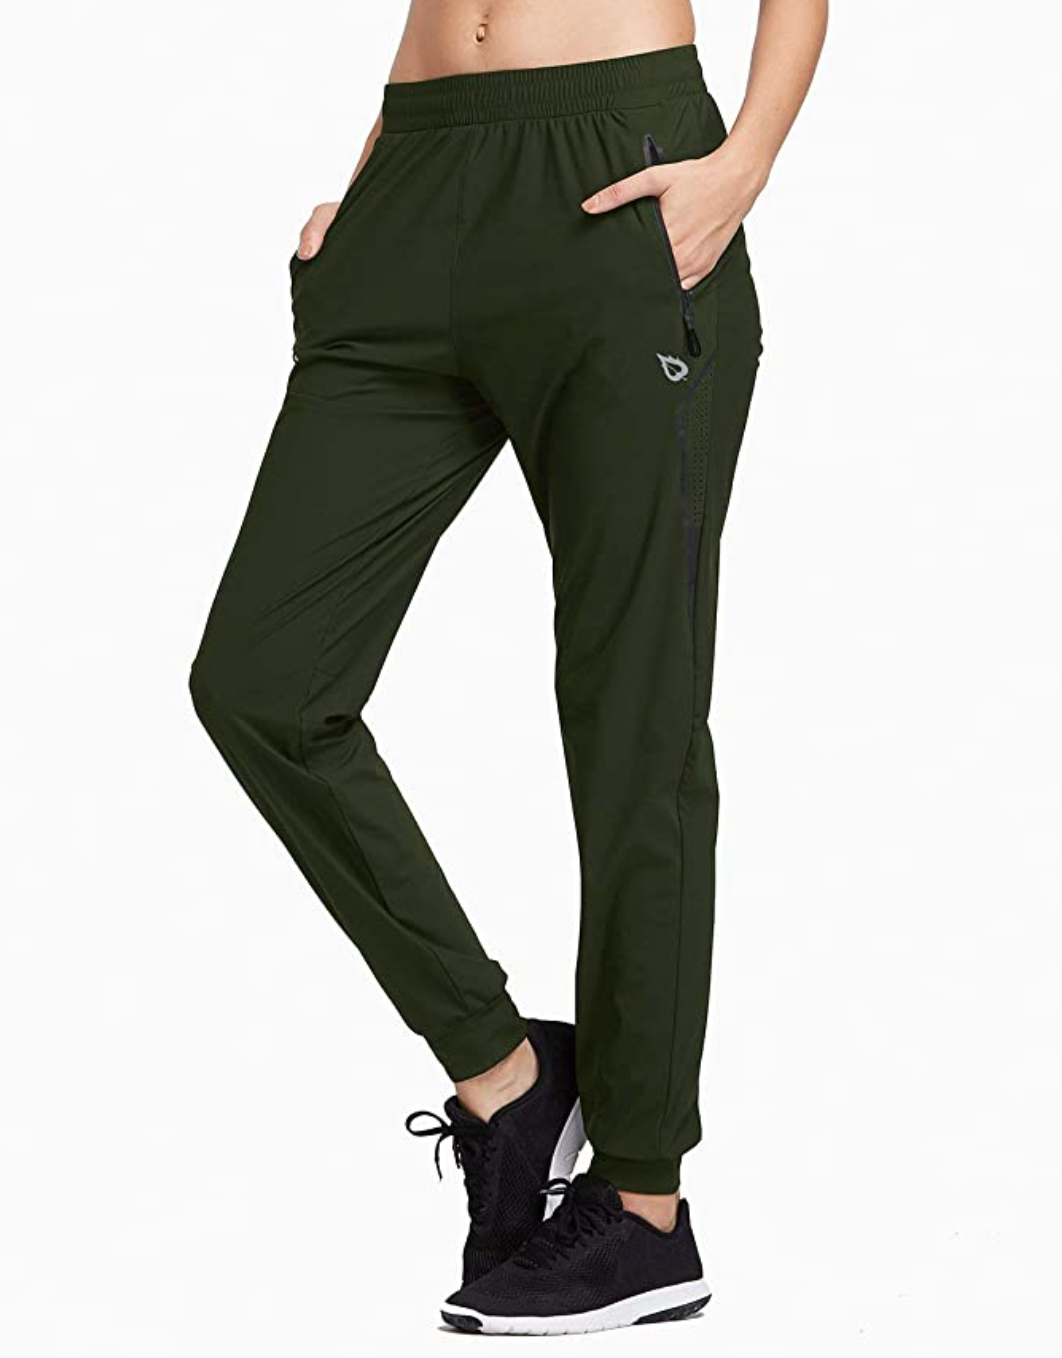 Baleaf evo hiking pants